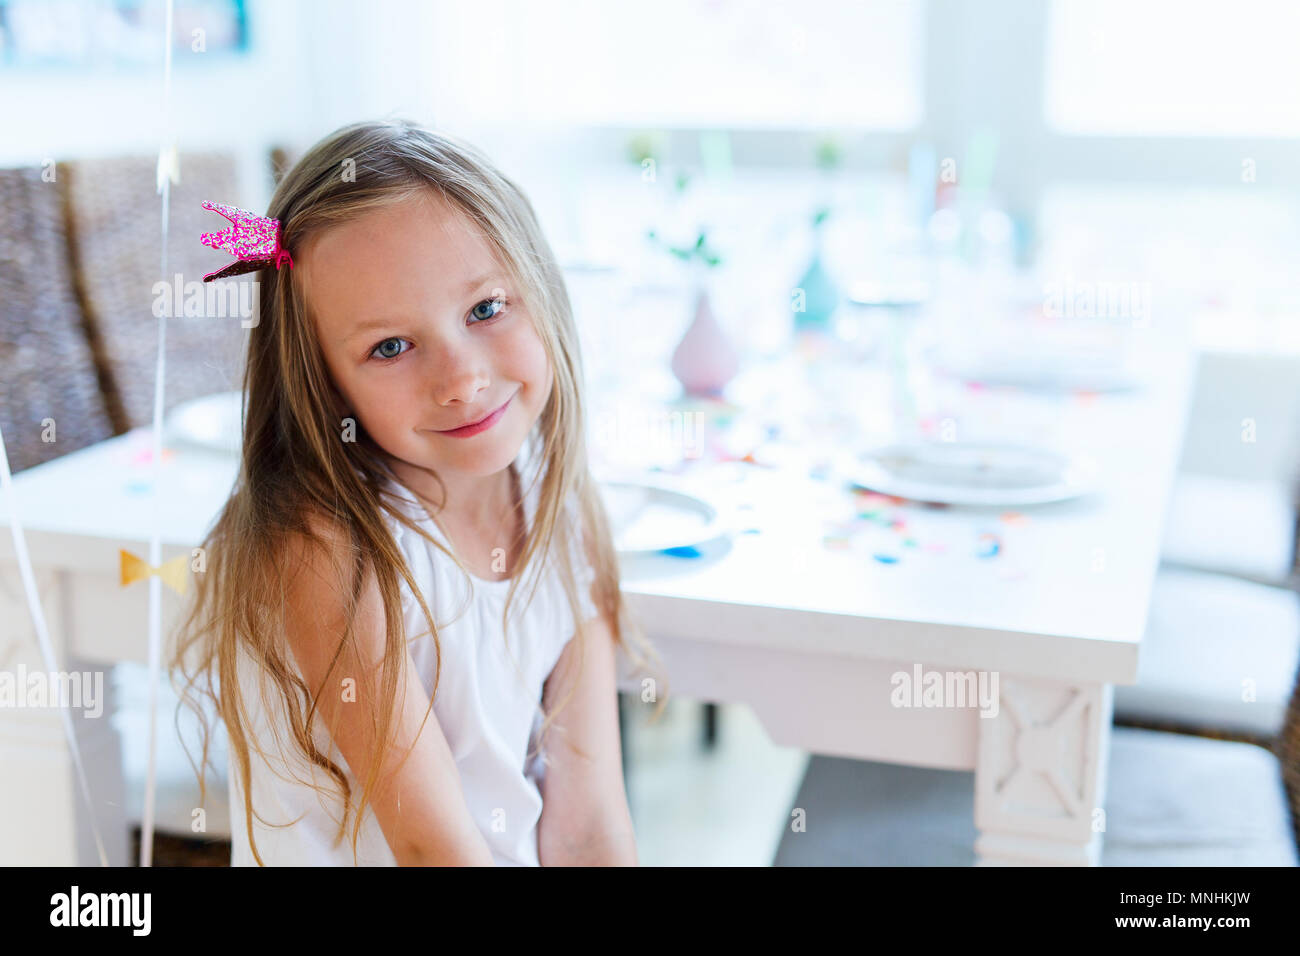 Adorable little girl with princess crown at kids birthday party - Stock Image